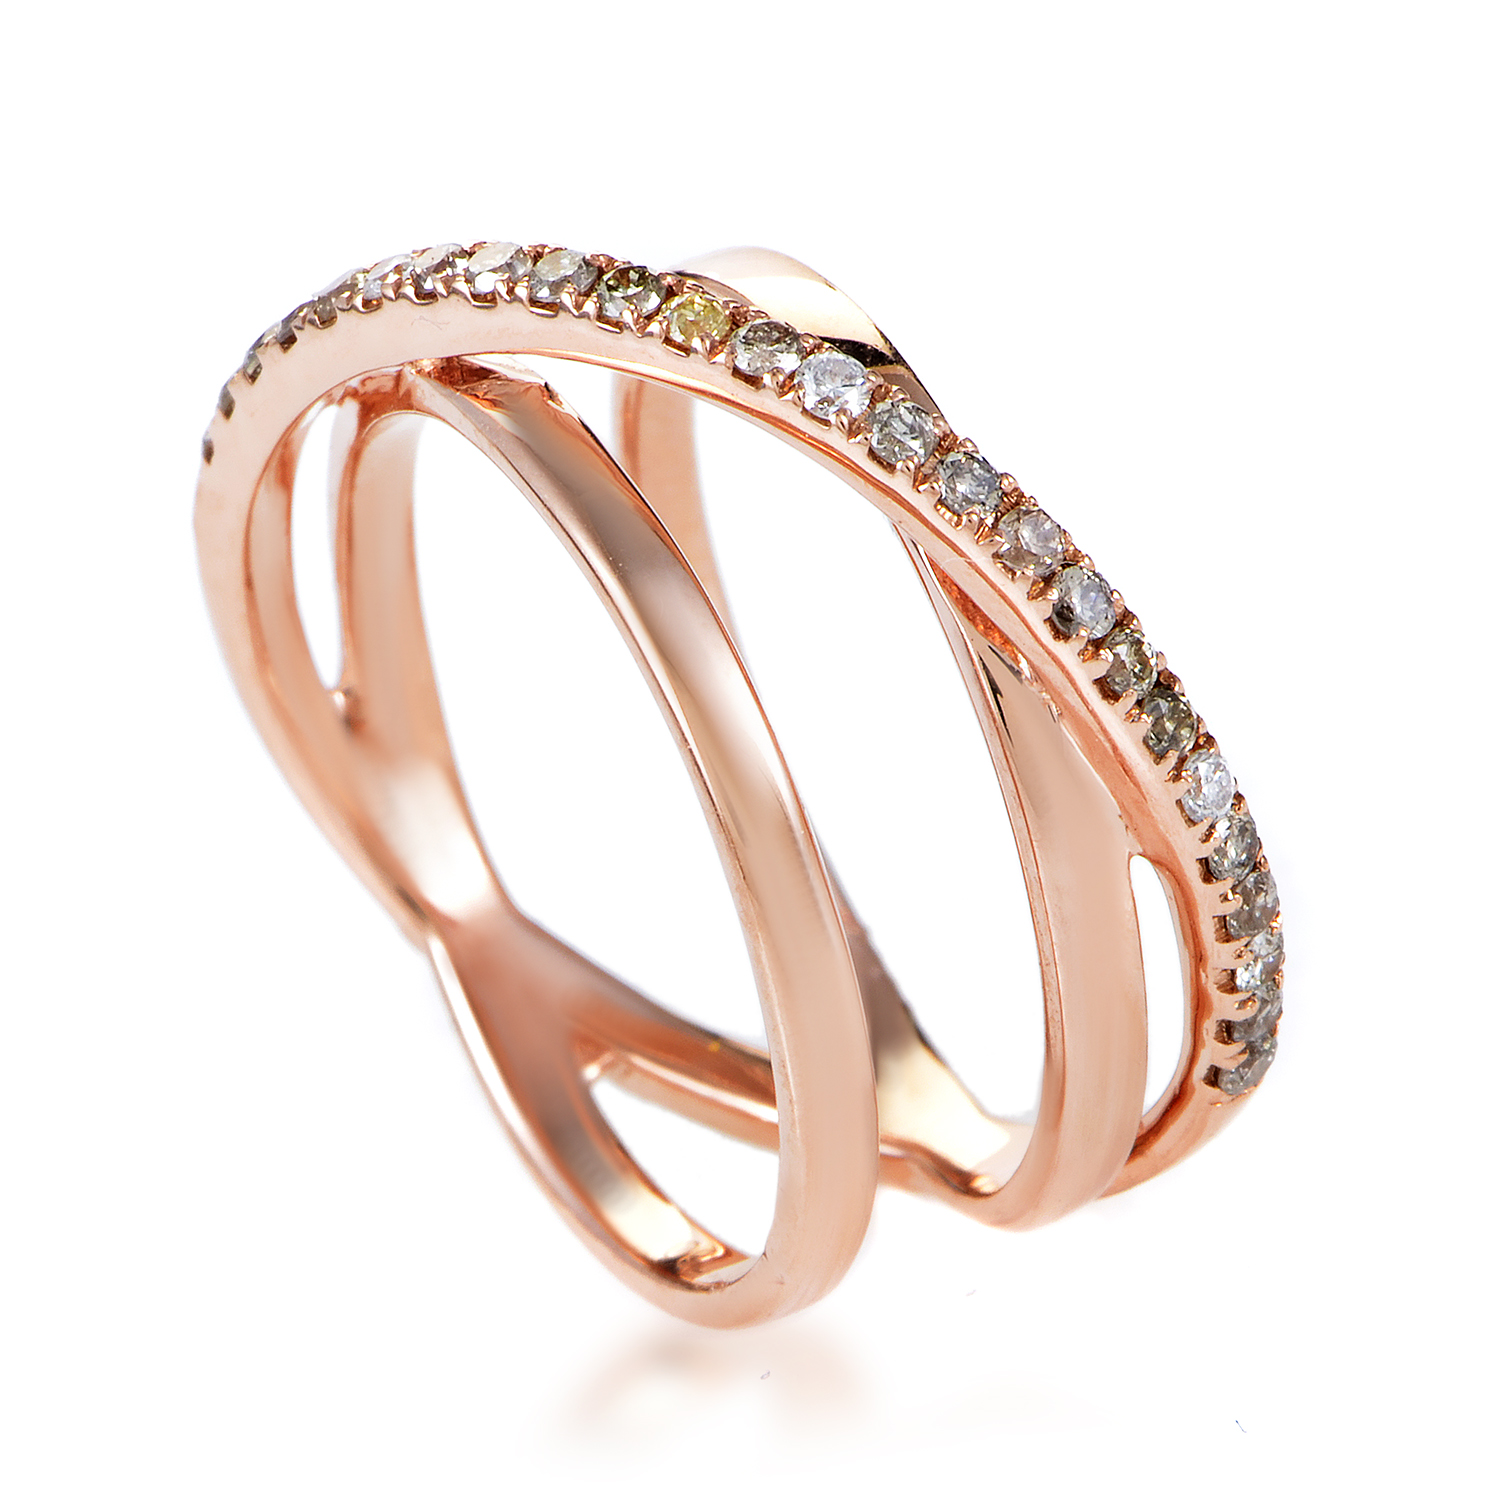 Women's 18K Rose Gold White & Brown Diamond Crossover Band Ring